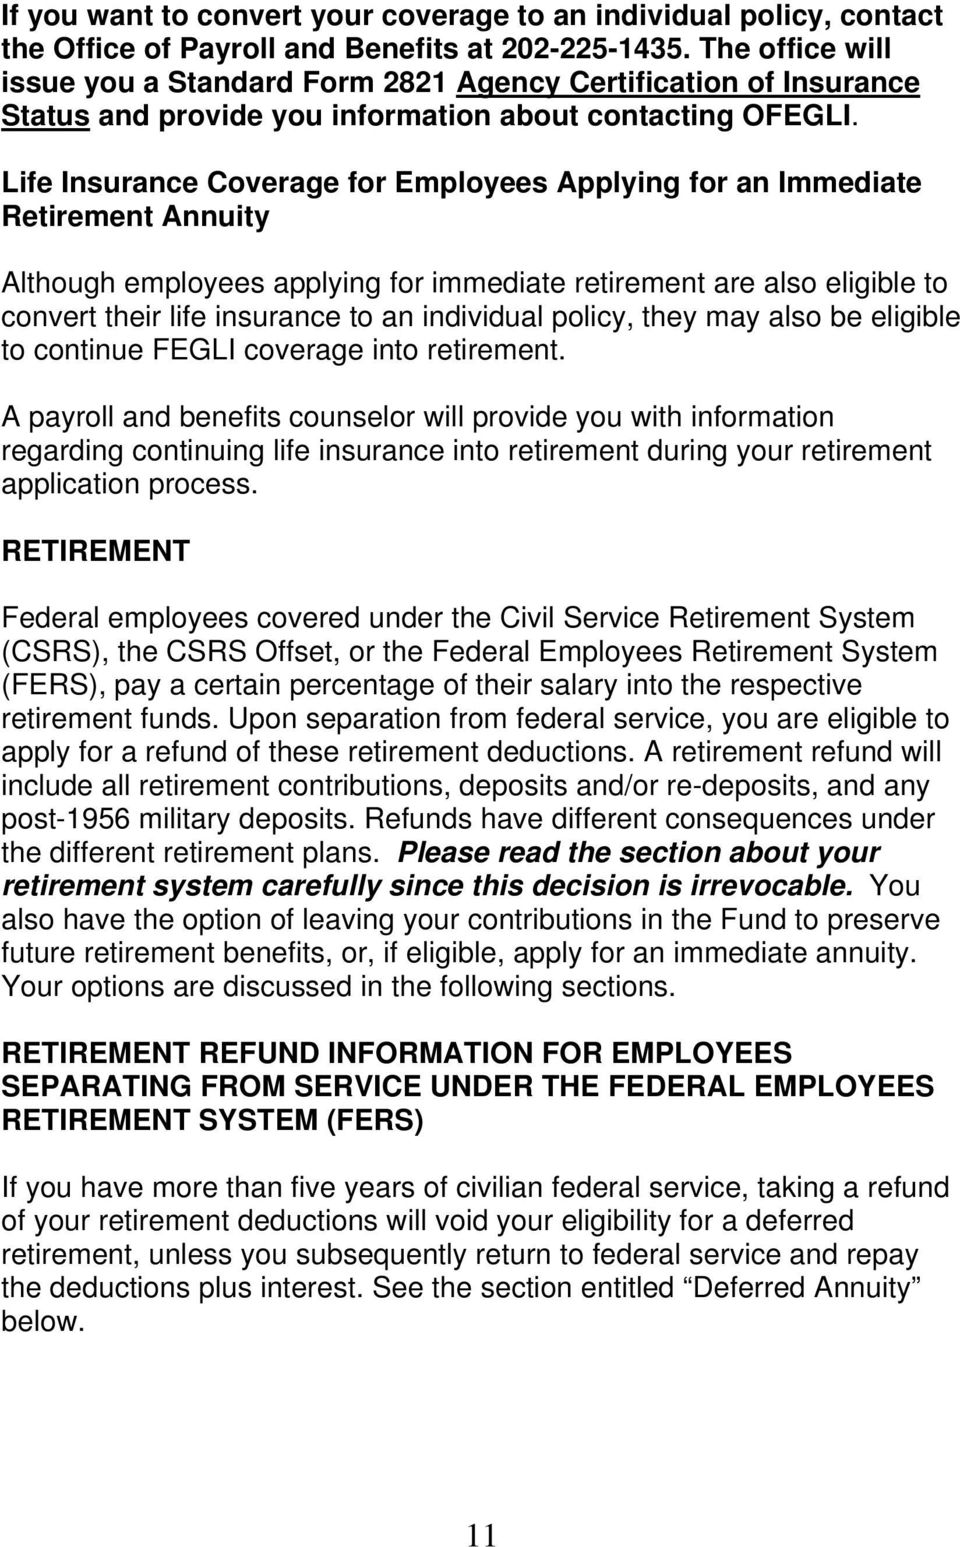 Life Insurance Coverage for Employees Applying for an Immediate Retirement Annuity Although employees applying for immediate retirement are also eligible to convert their life insurance to an